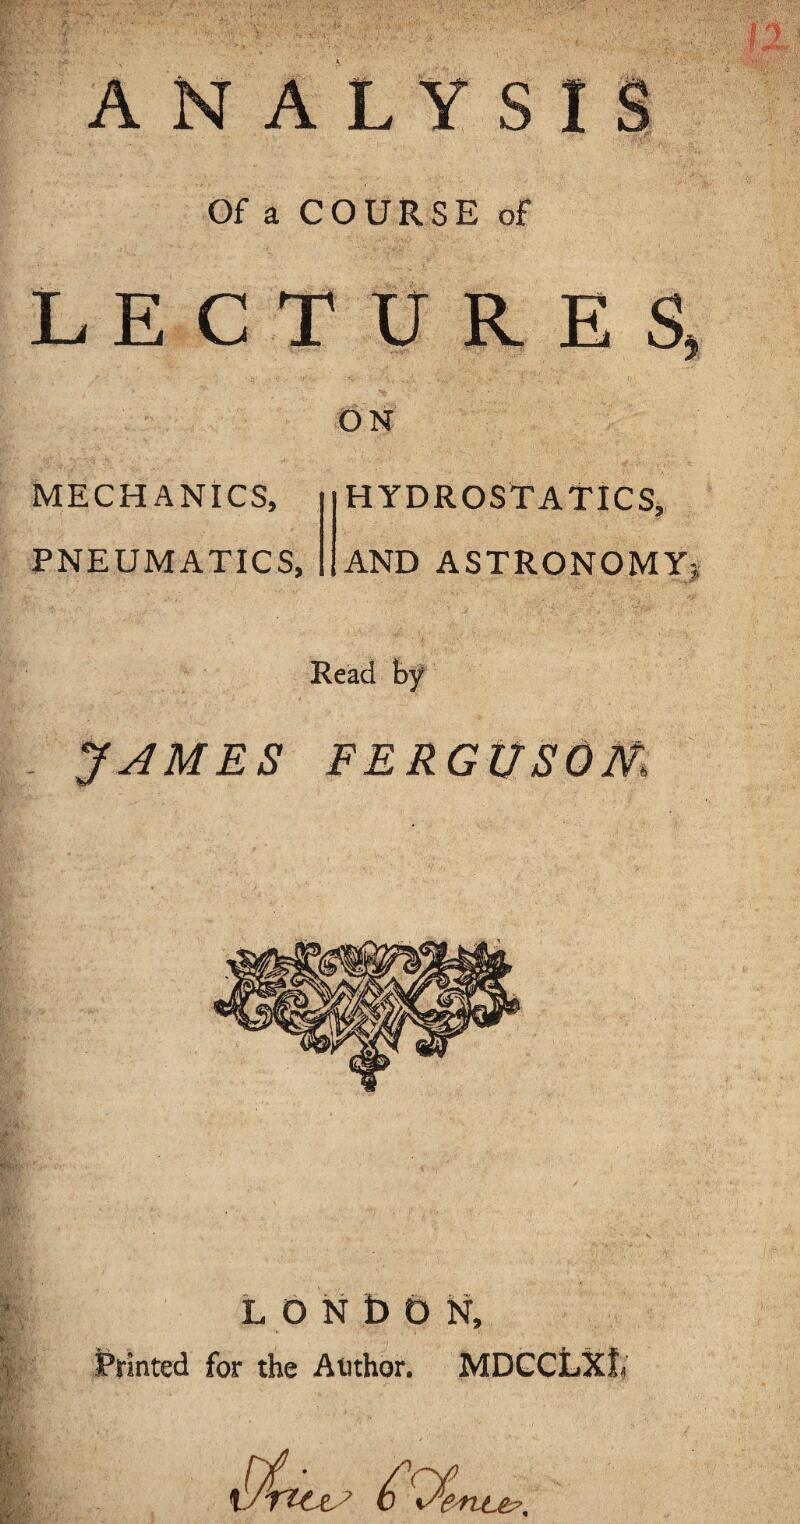 ANALYSIS Of a COURSE of LECTURES ON MECHANICS, PNEUMATICS, HYDROSTATICS, AND ASTRONOMY Read by JAMES FERGEtSOm LONDON, Printed for the Author. MDCCLXt net?